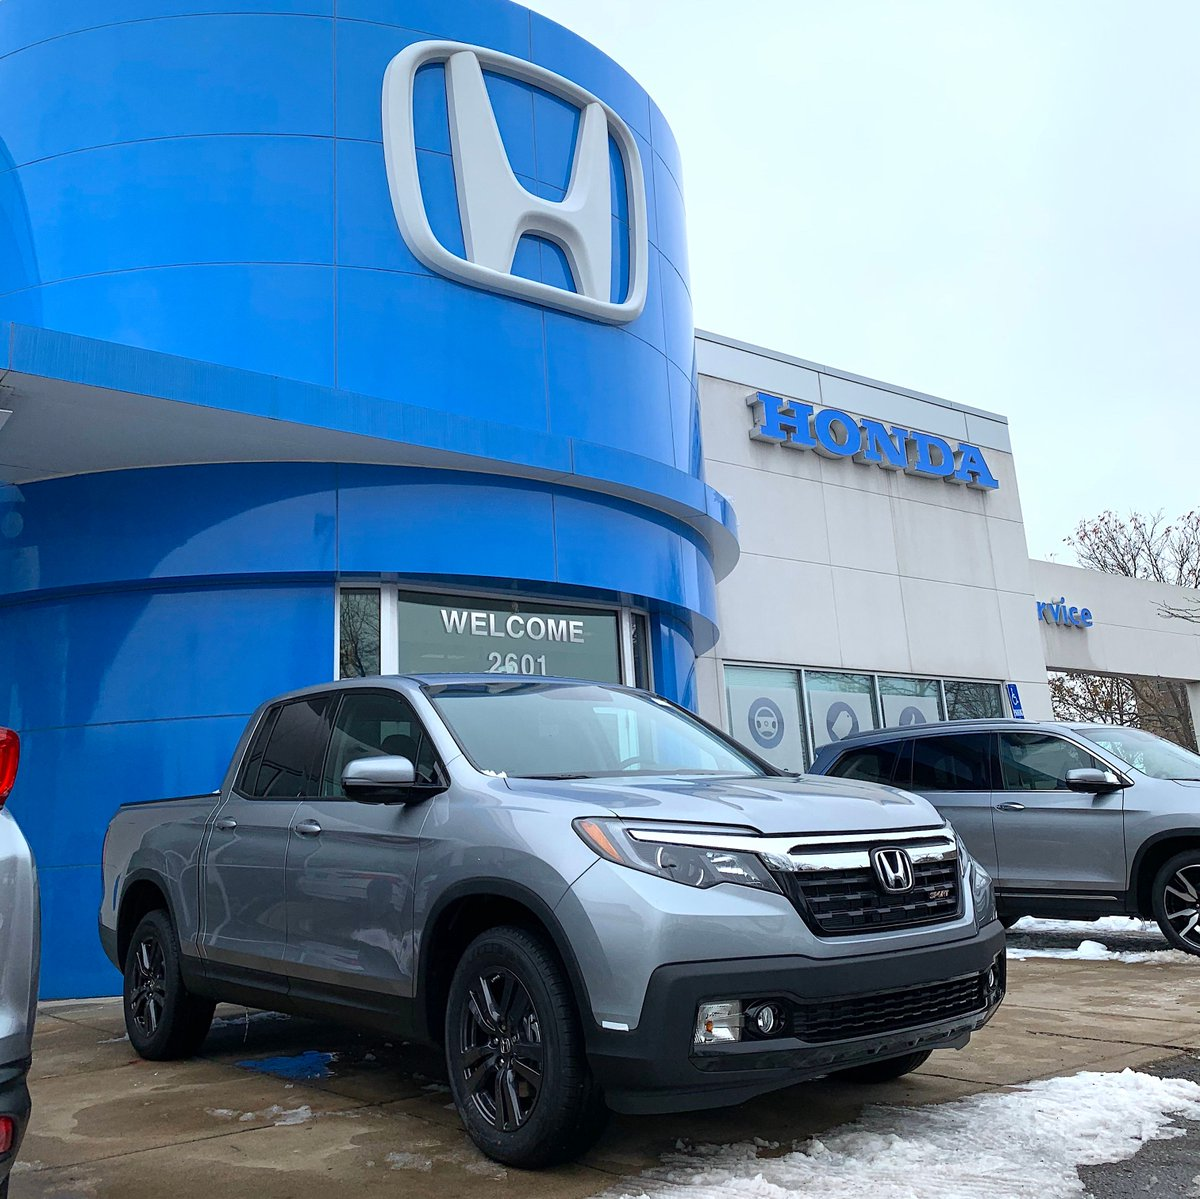 A little snow won't stop the #HondaRidgeline